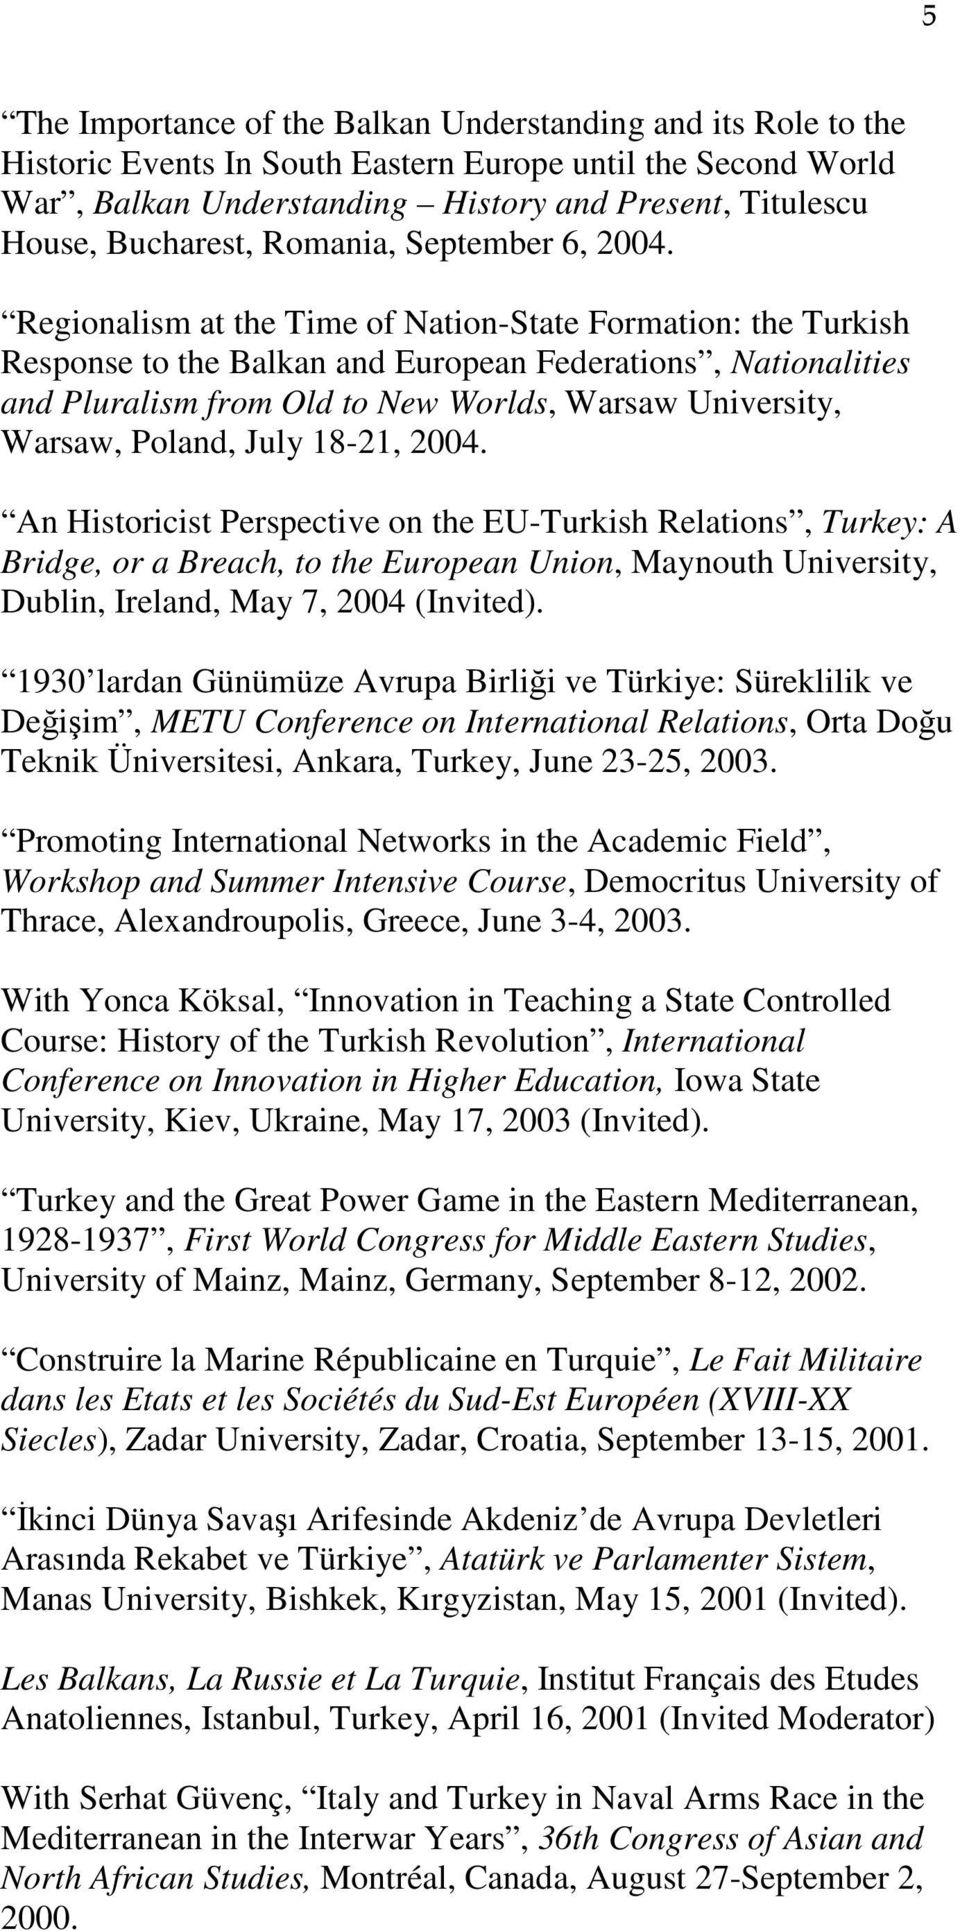 Regionalism at the Time of Nation-State Formation: the Turkish Response to the Balkan and European Federations, Nationalities and Pluralism from Old to New Worlds, Warsaw University, Warsaw, Poland,